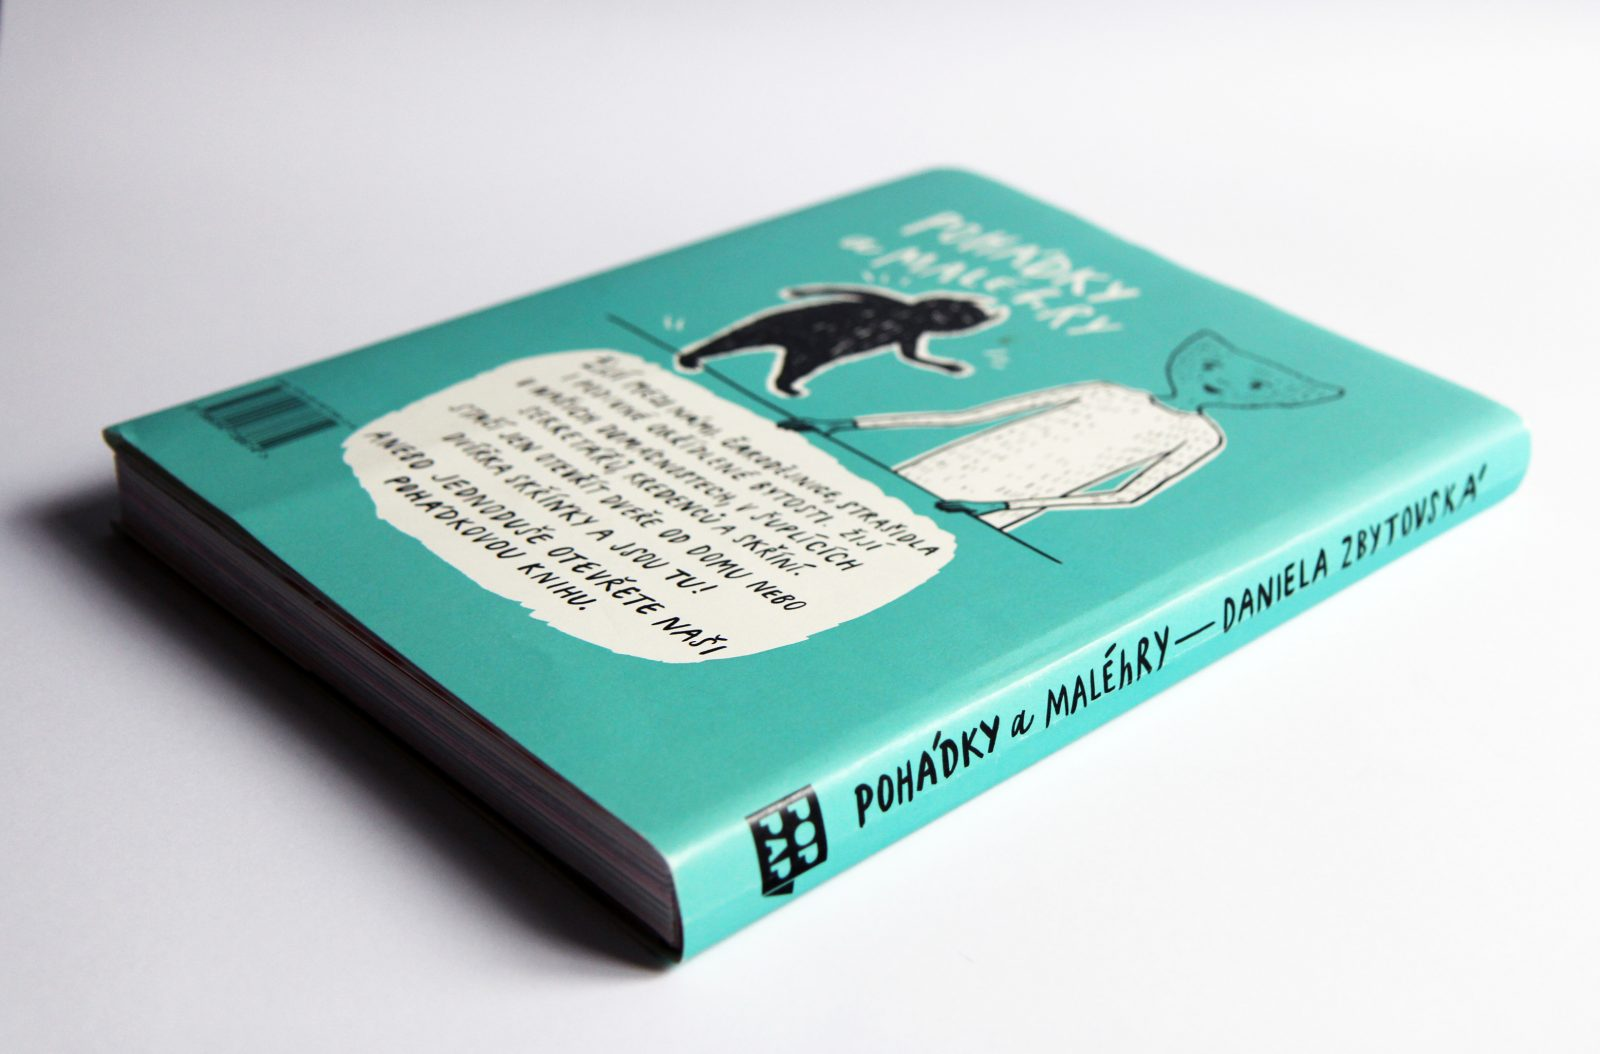 Pohádky a MALÉhRY Is Not an Ordinary Children's Book